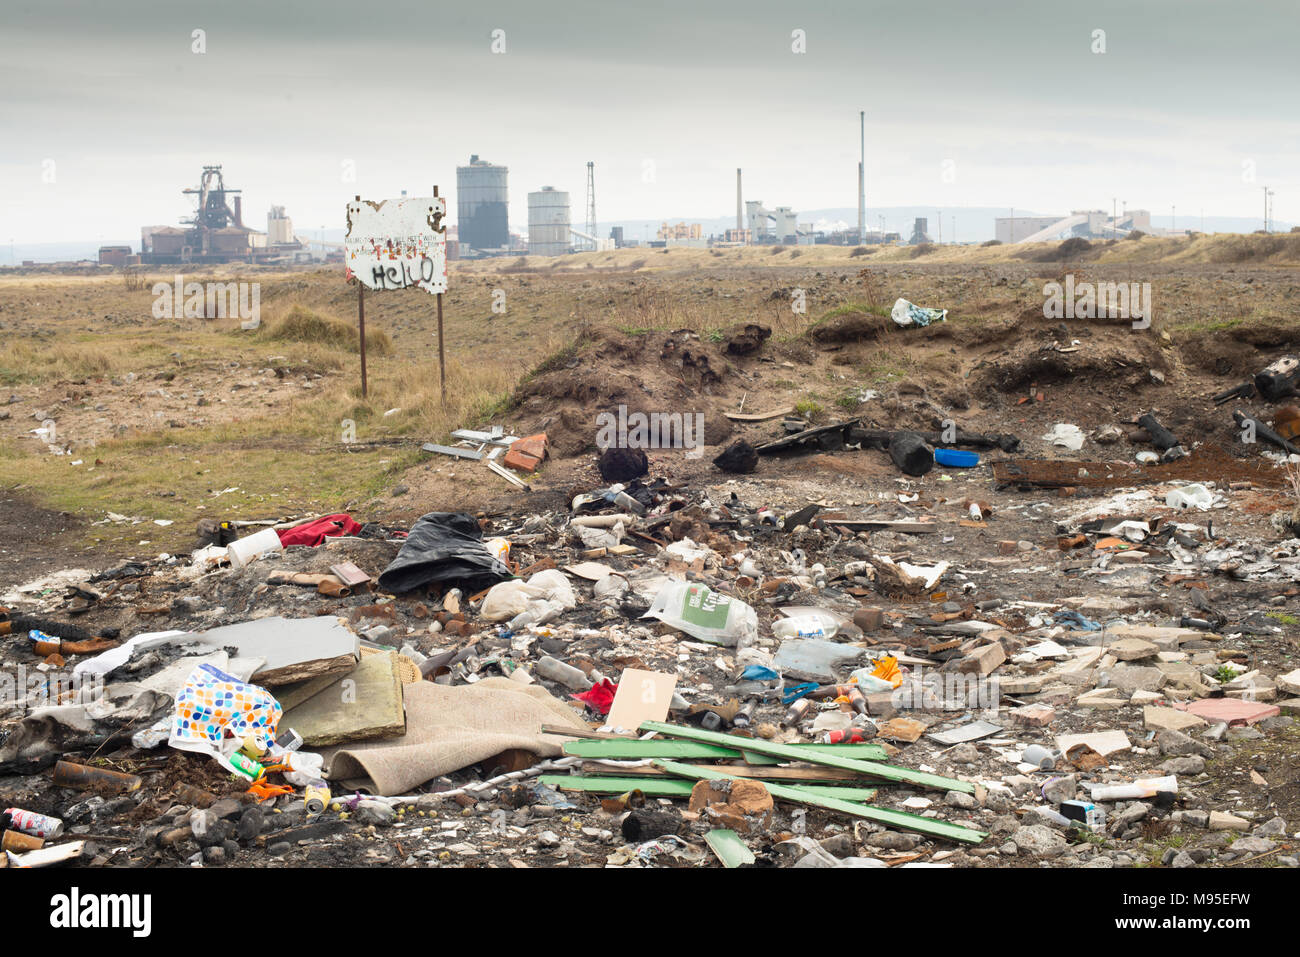 Fly tipping on industrial wasteland, South Gare, Redcar, Teesside. UK - Stock Image